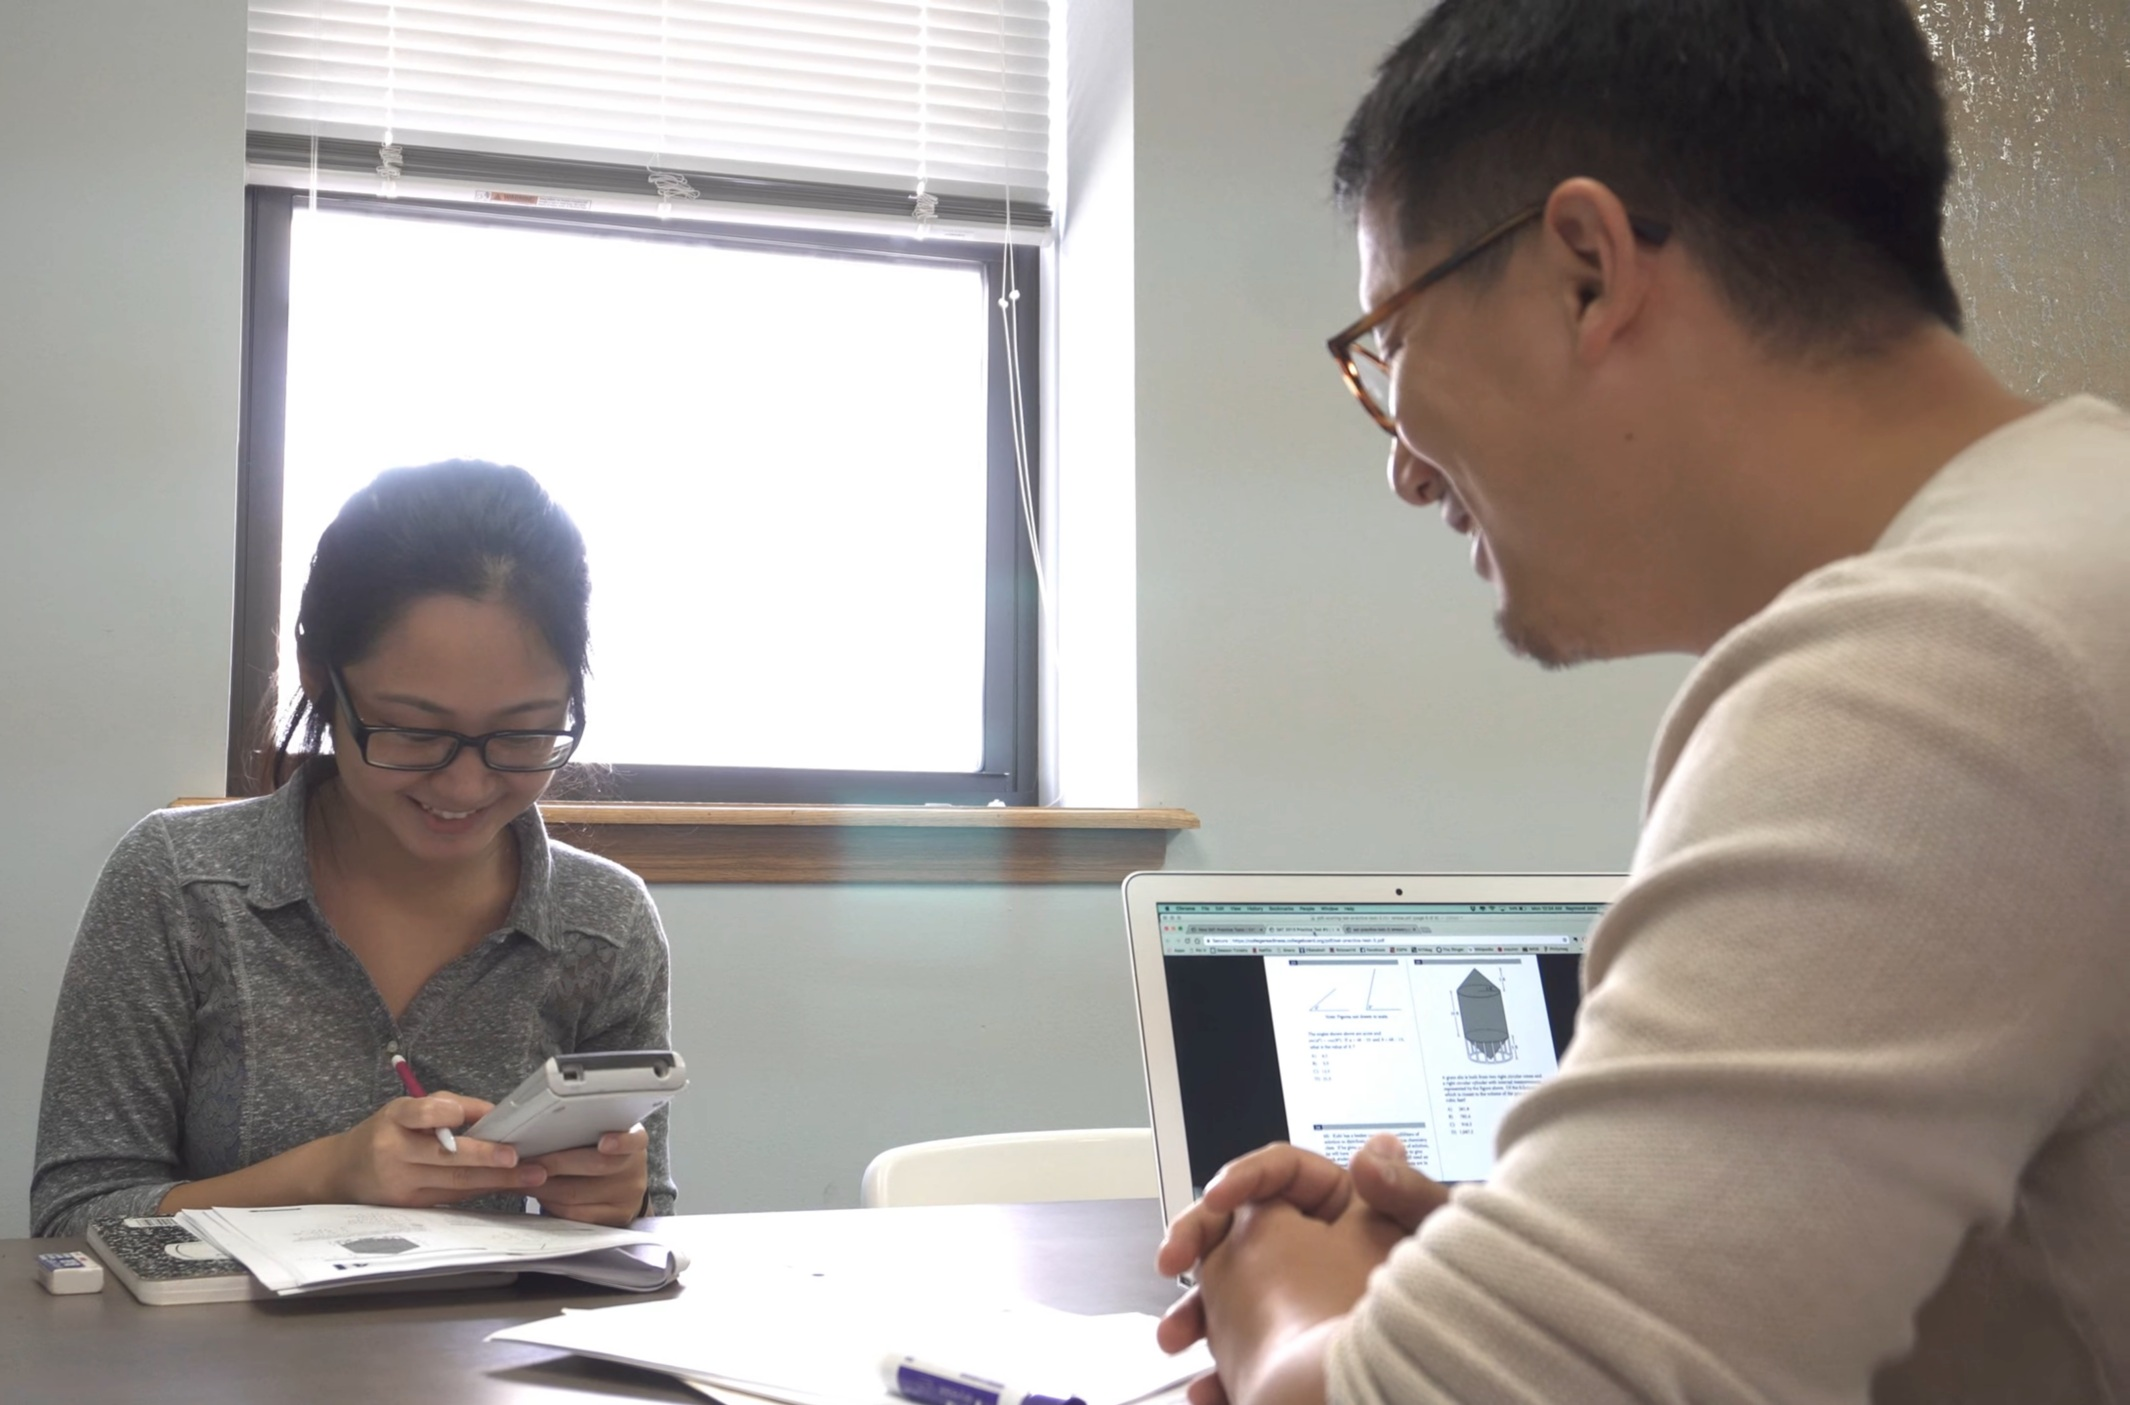 Personal Tutoring - Every student learns at his or her own pace. Have you noticed that the pace of the traditional classroom isn't helping your student meet the mark?We offer 1-on-1 personal tutoring in all major subject areas as well as standardized test prep. We believe tutoring should provide both intensive instruction and a personalized perspective in order to fulfill each student's needs.